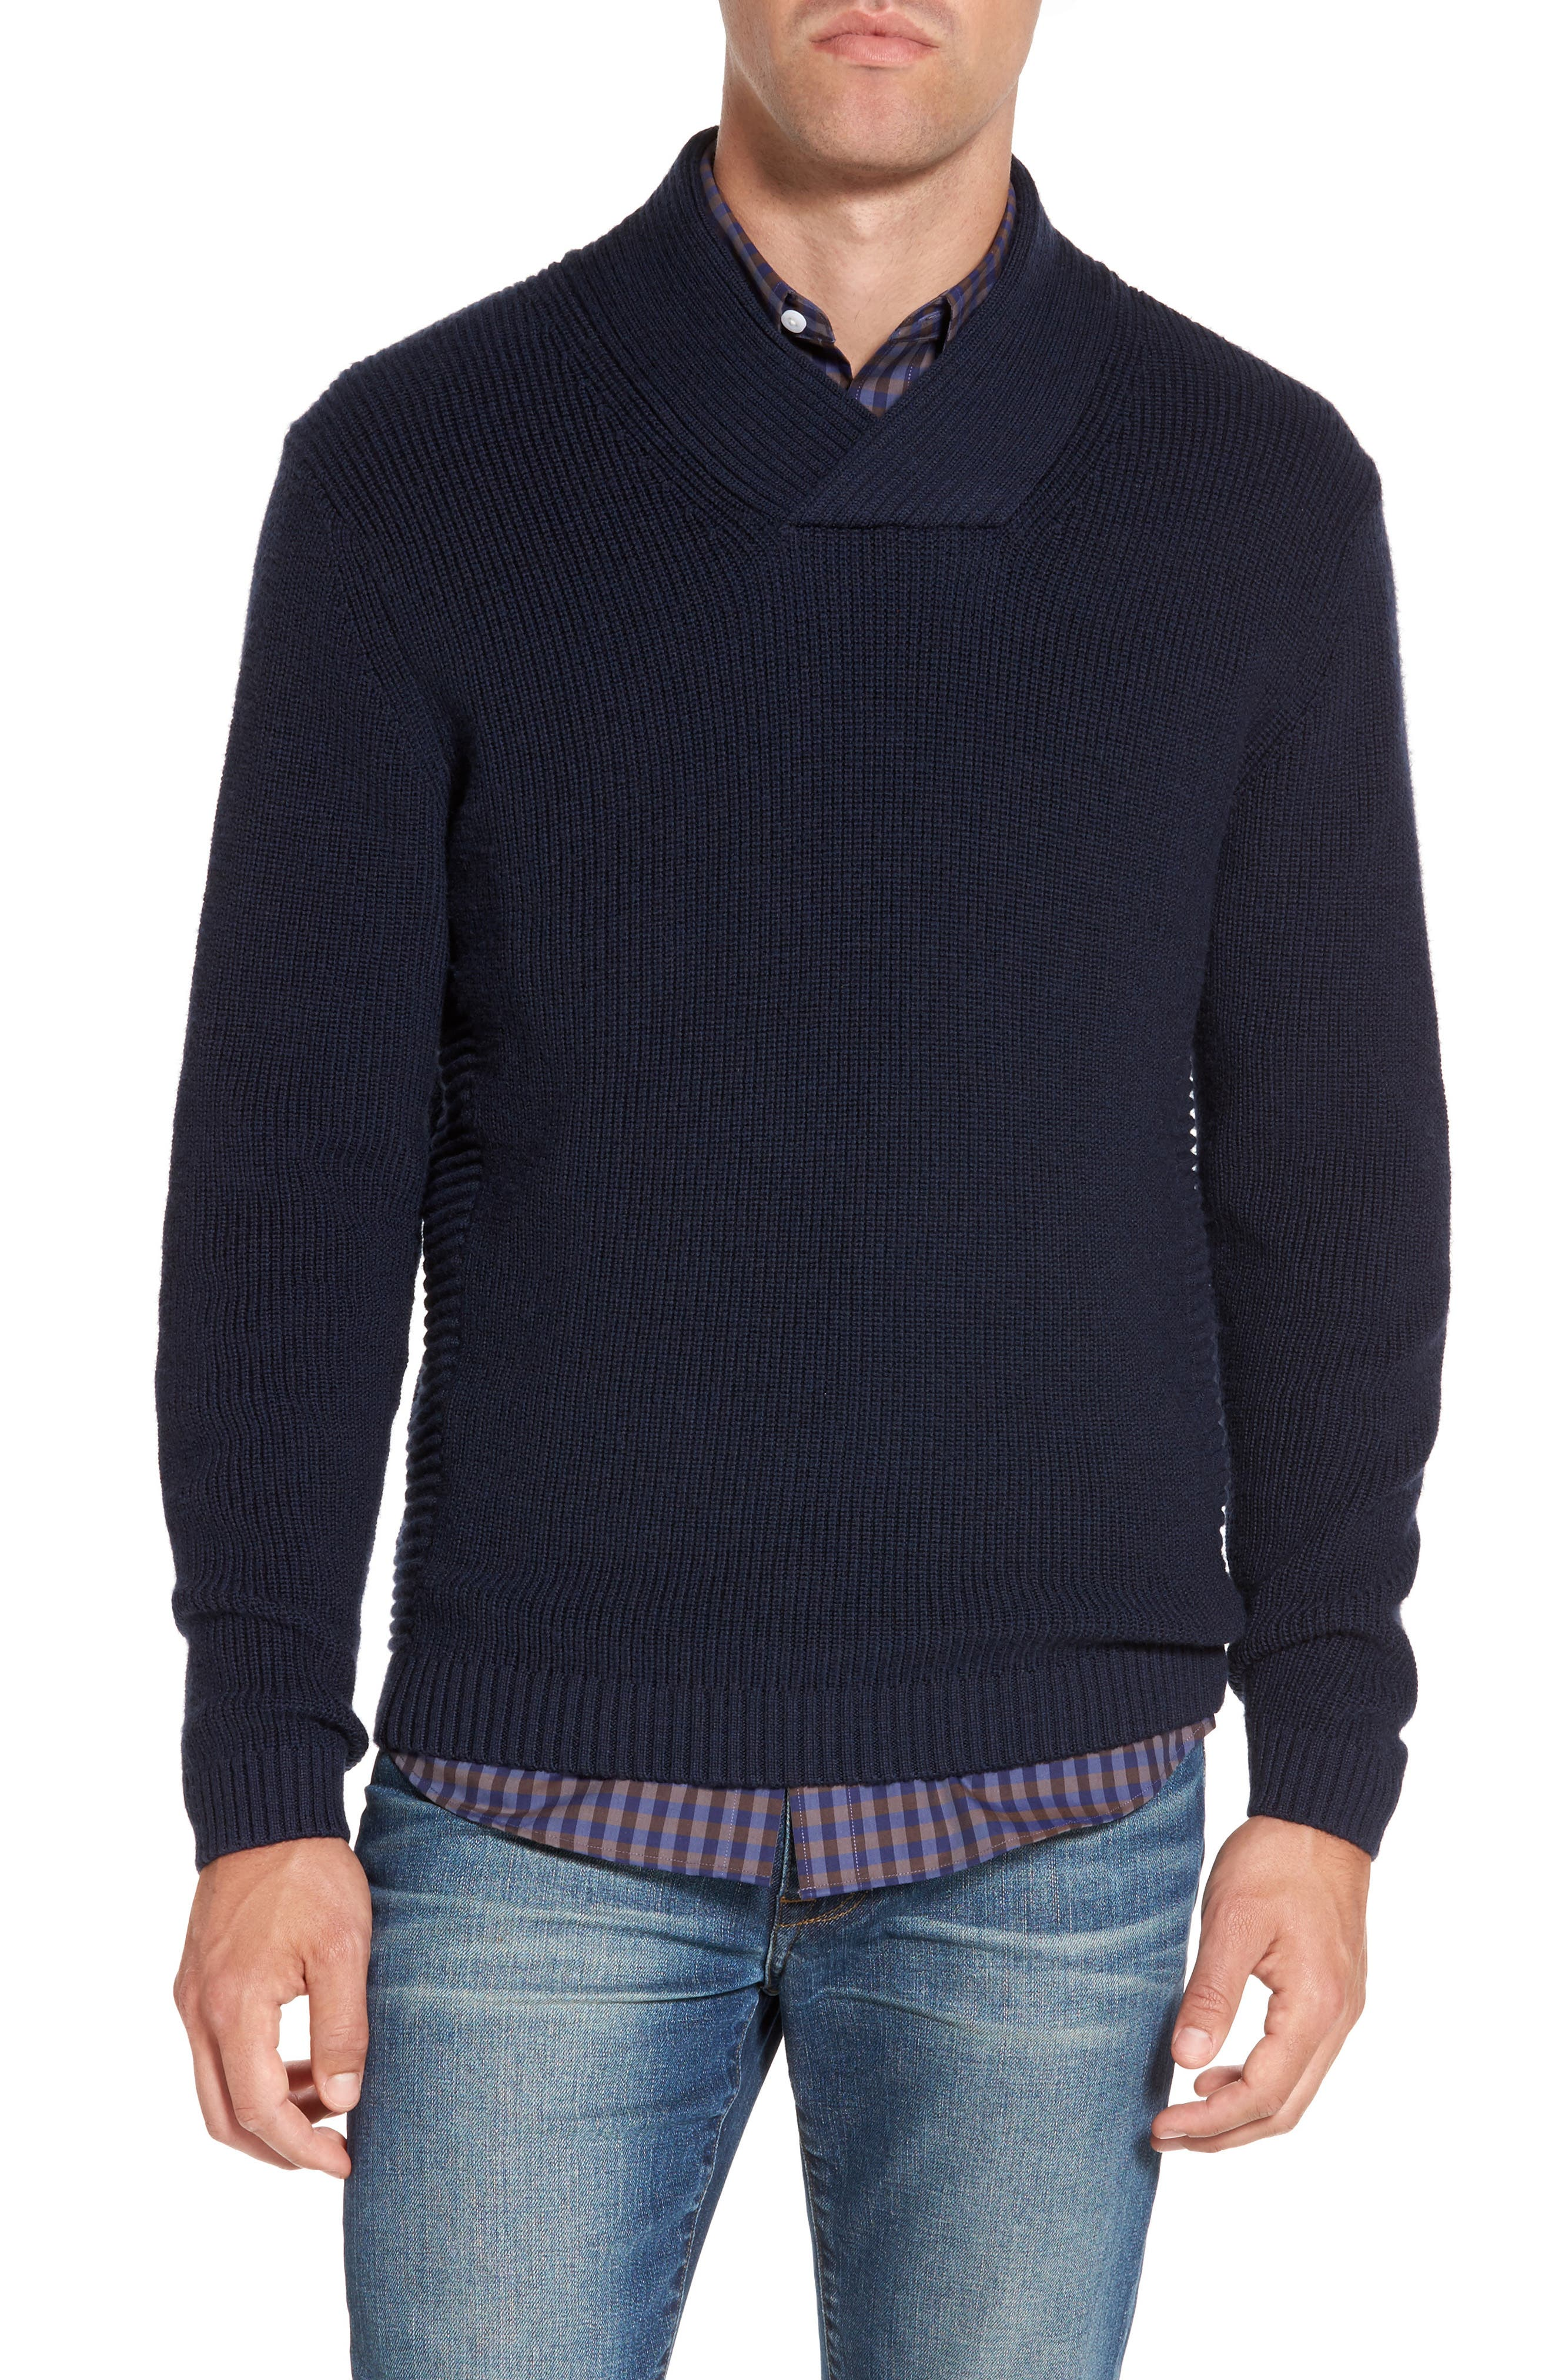 Charlesworth Suede Patch Merino Wool Sweater,                             Main thumbnail 1, color,                             432